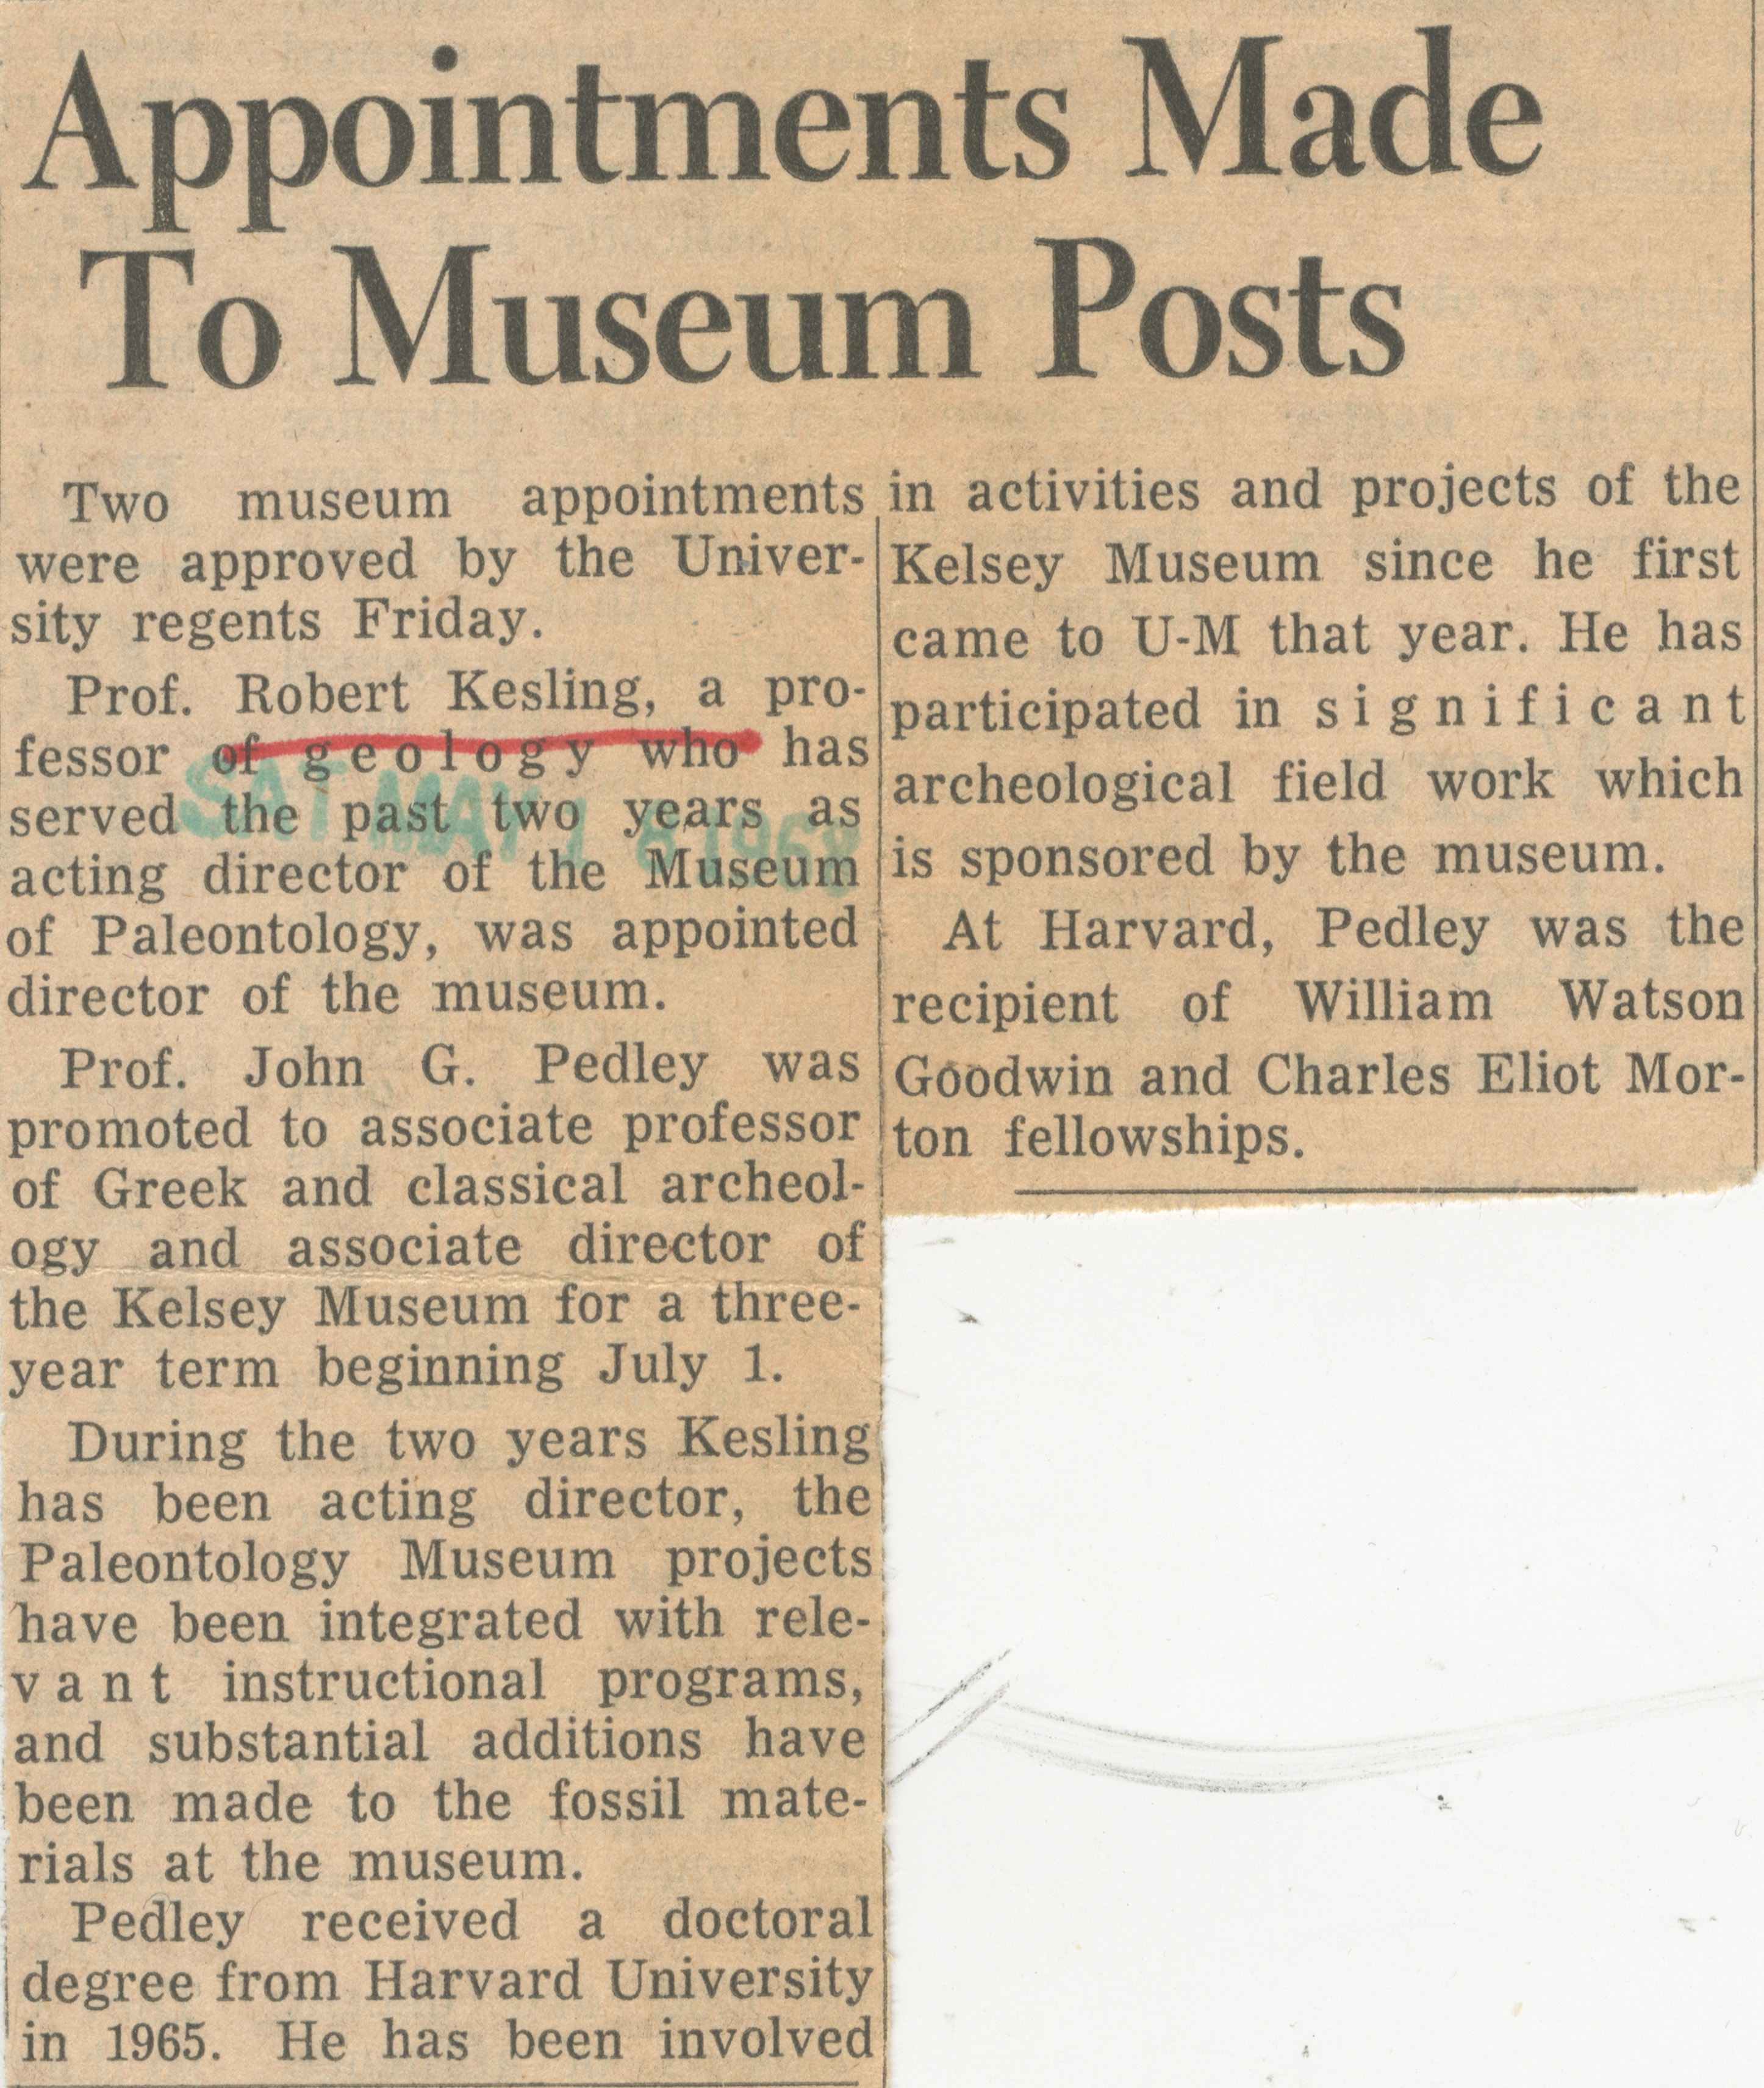 Appointments Made To Museum Posts image